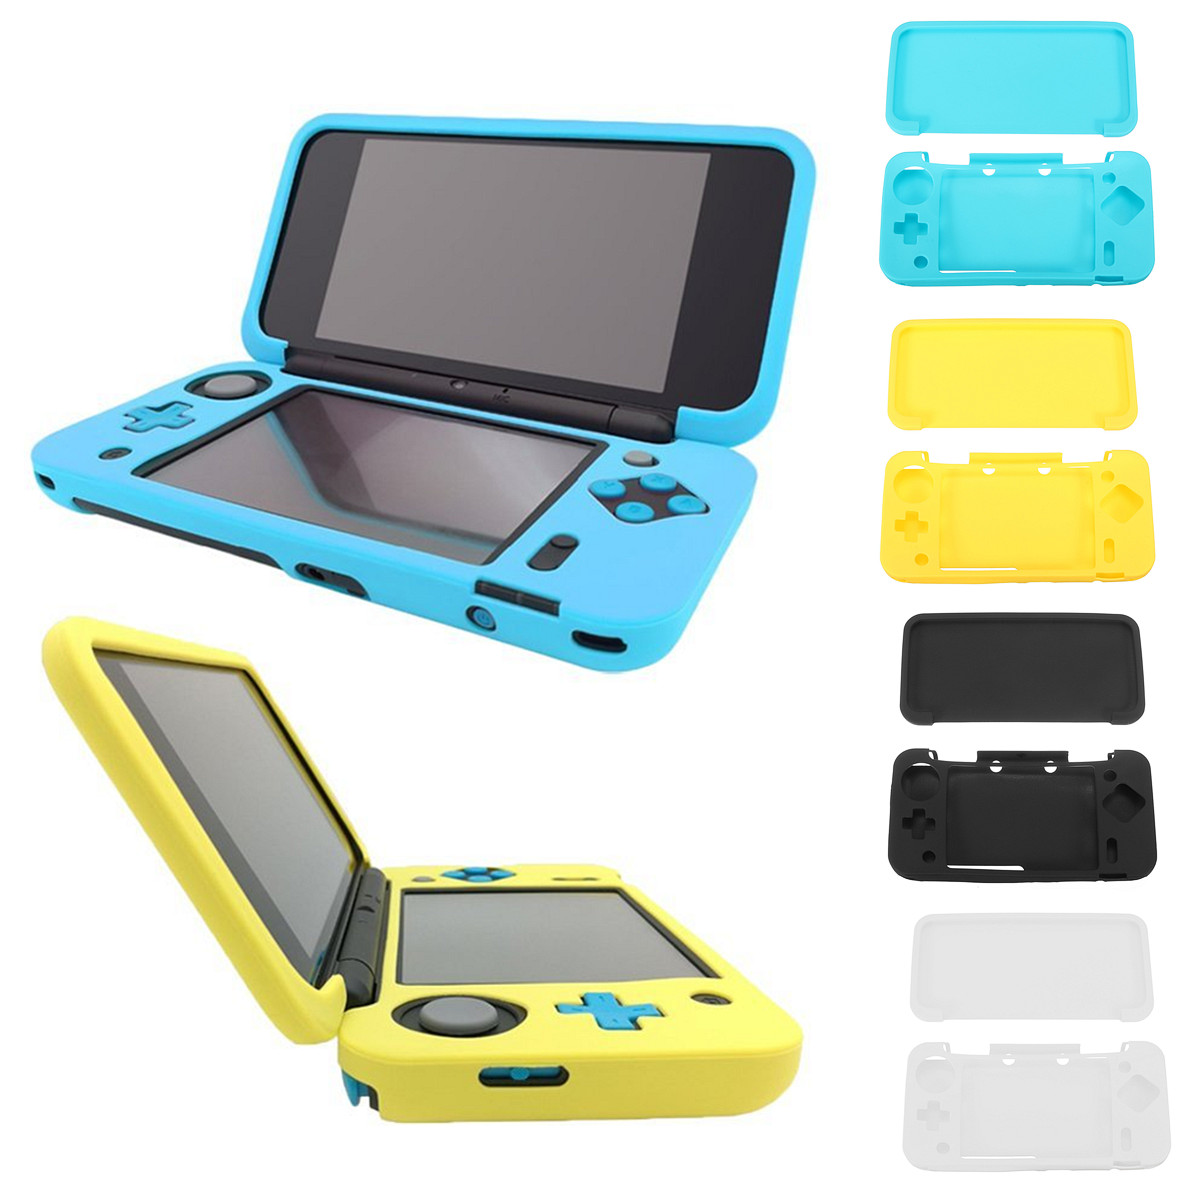 Silicone Full Protective Cover Skin Game Machine Protectors Set For NEW 2DS LL Console Soft Full Cover Protect Case Game Accesso